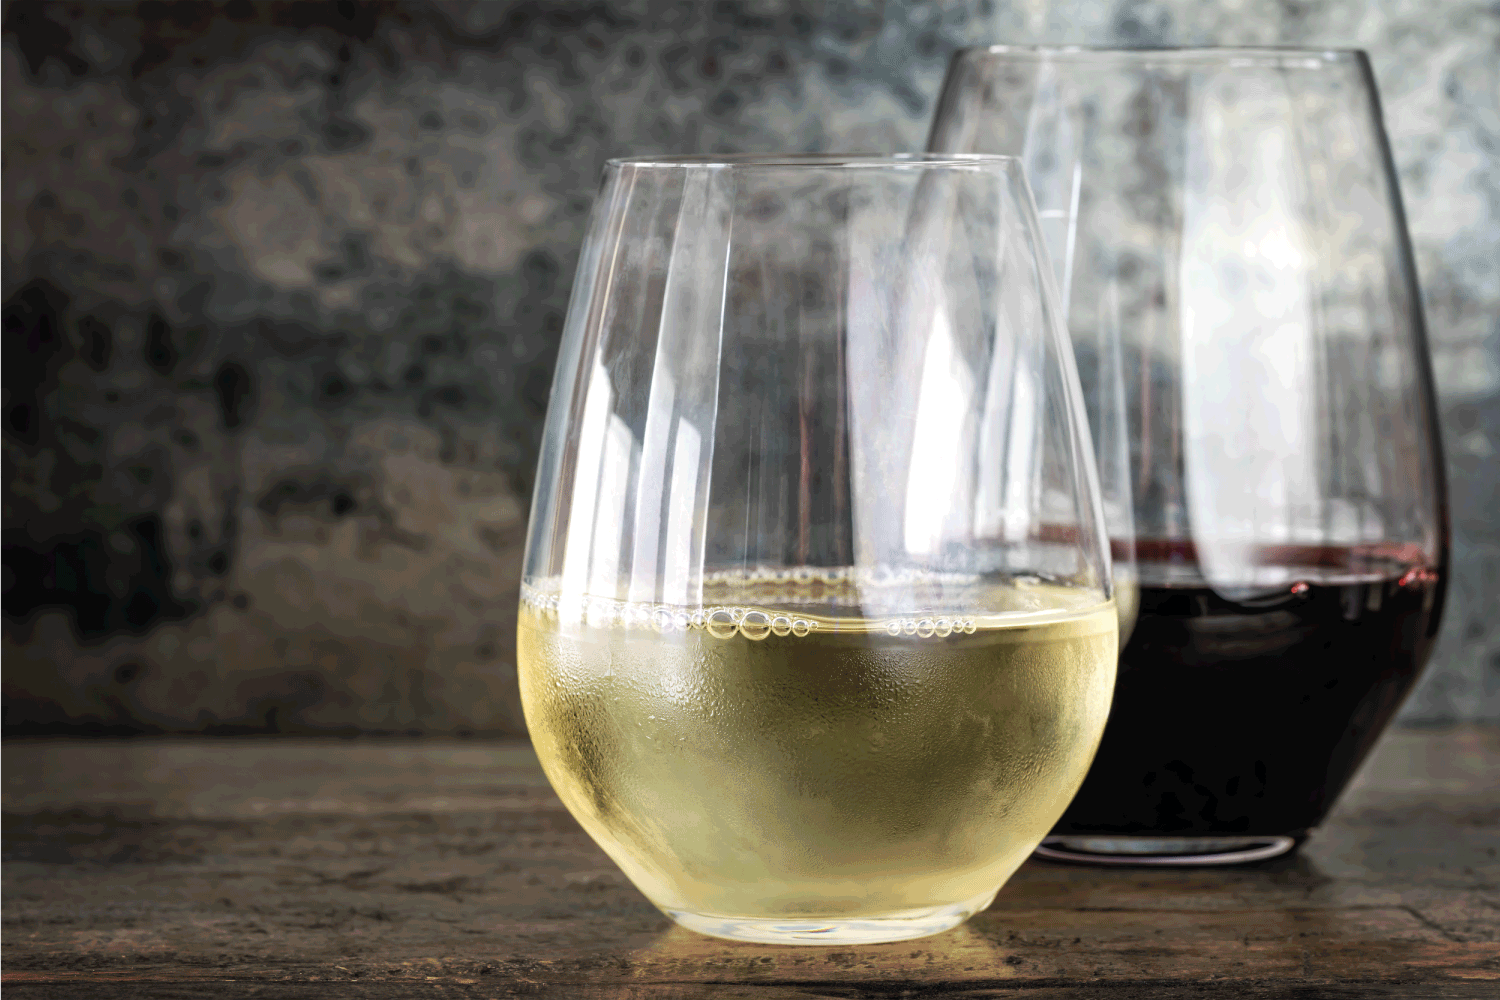 White and red wine in modern stemless glasses, with slate and timber background